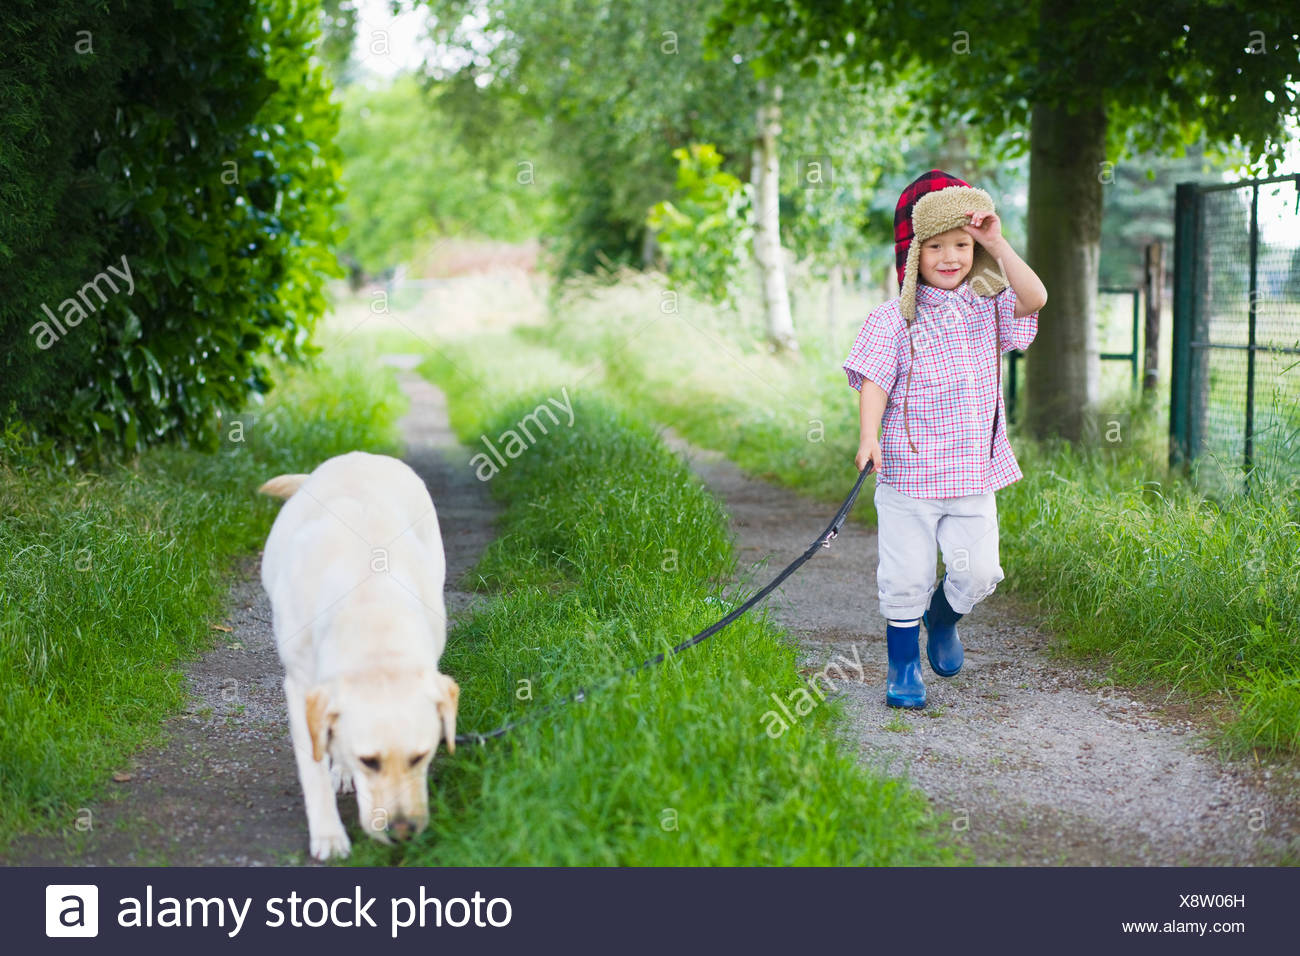 A boy walking his dog - Stock Image